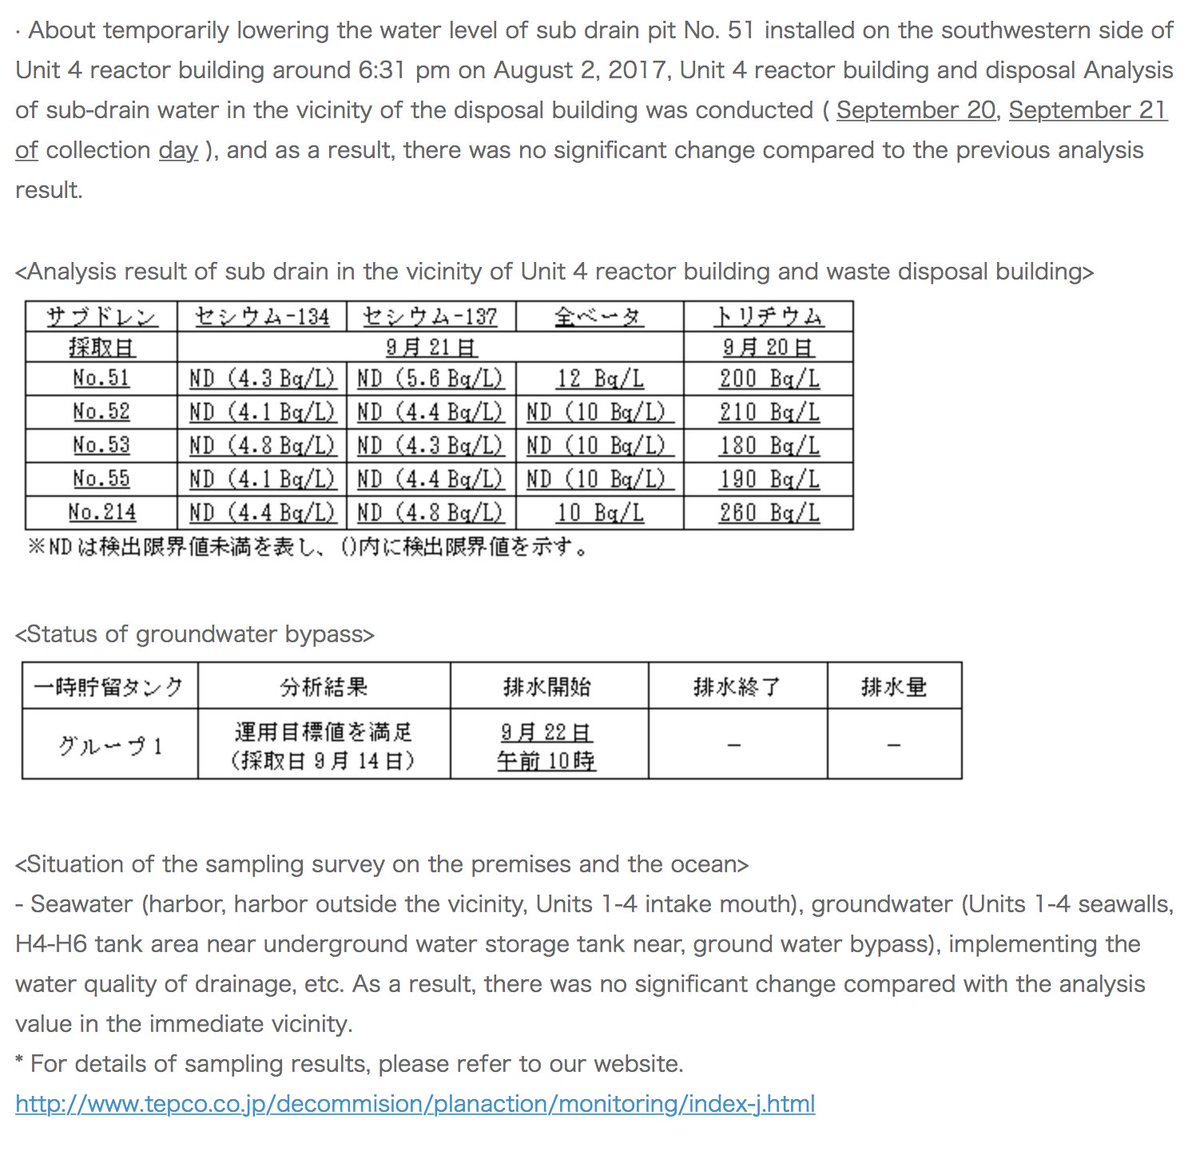 22 Sept TEPCO Daily more burying of #physics #tech #data #energy #waste #security news  http://www. tepco.co.jp/press/report/2 017/1455358_8981.html &nbsp; …  Fukushima #genpatsu #policy<br>http://pic.twitter.com/UKuM7G0gib